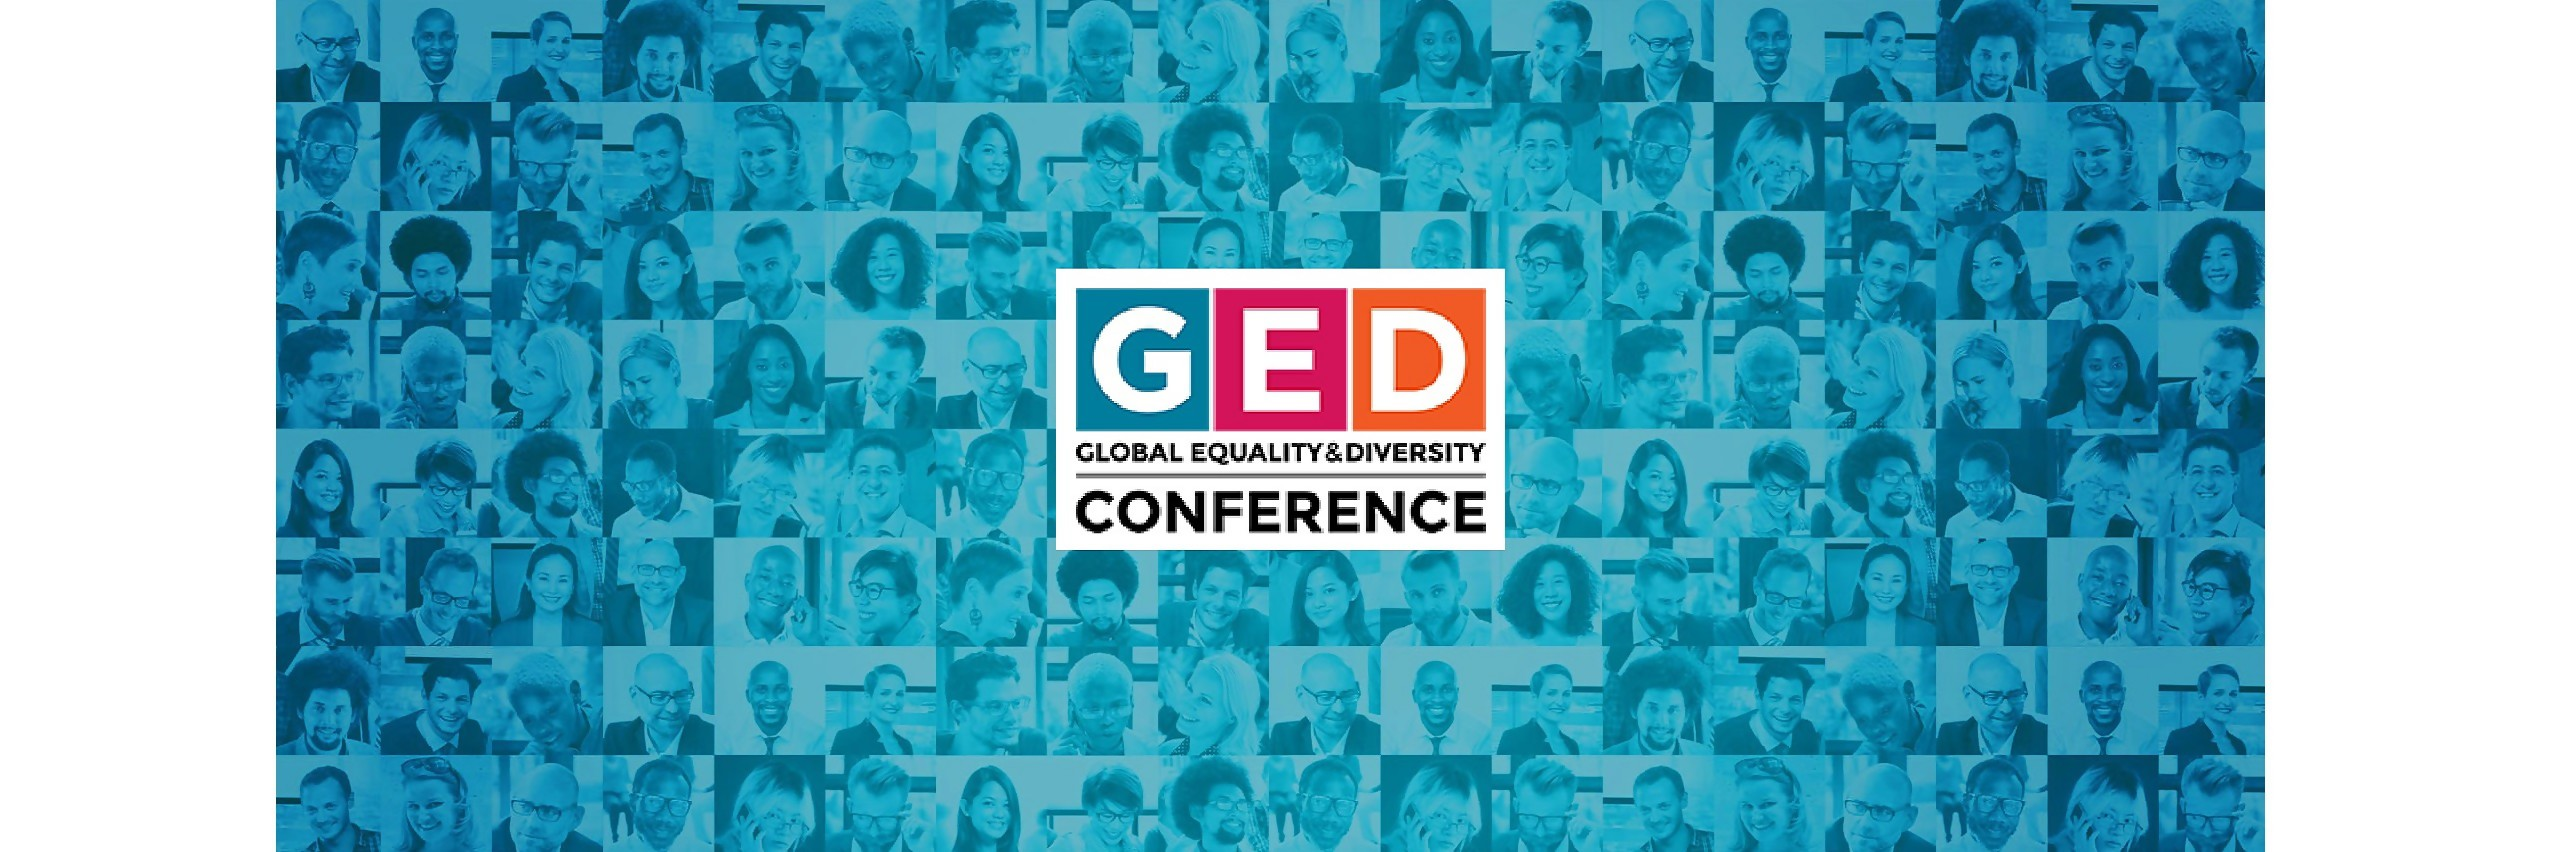 Global Equality & Diversity Conference & Awards